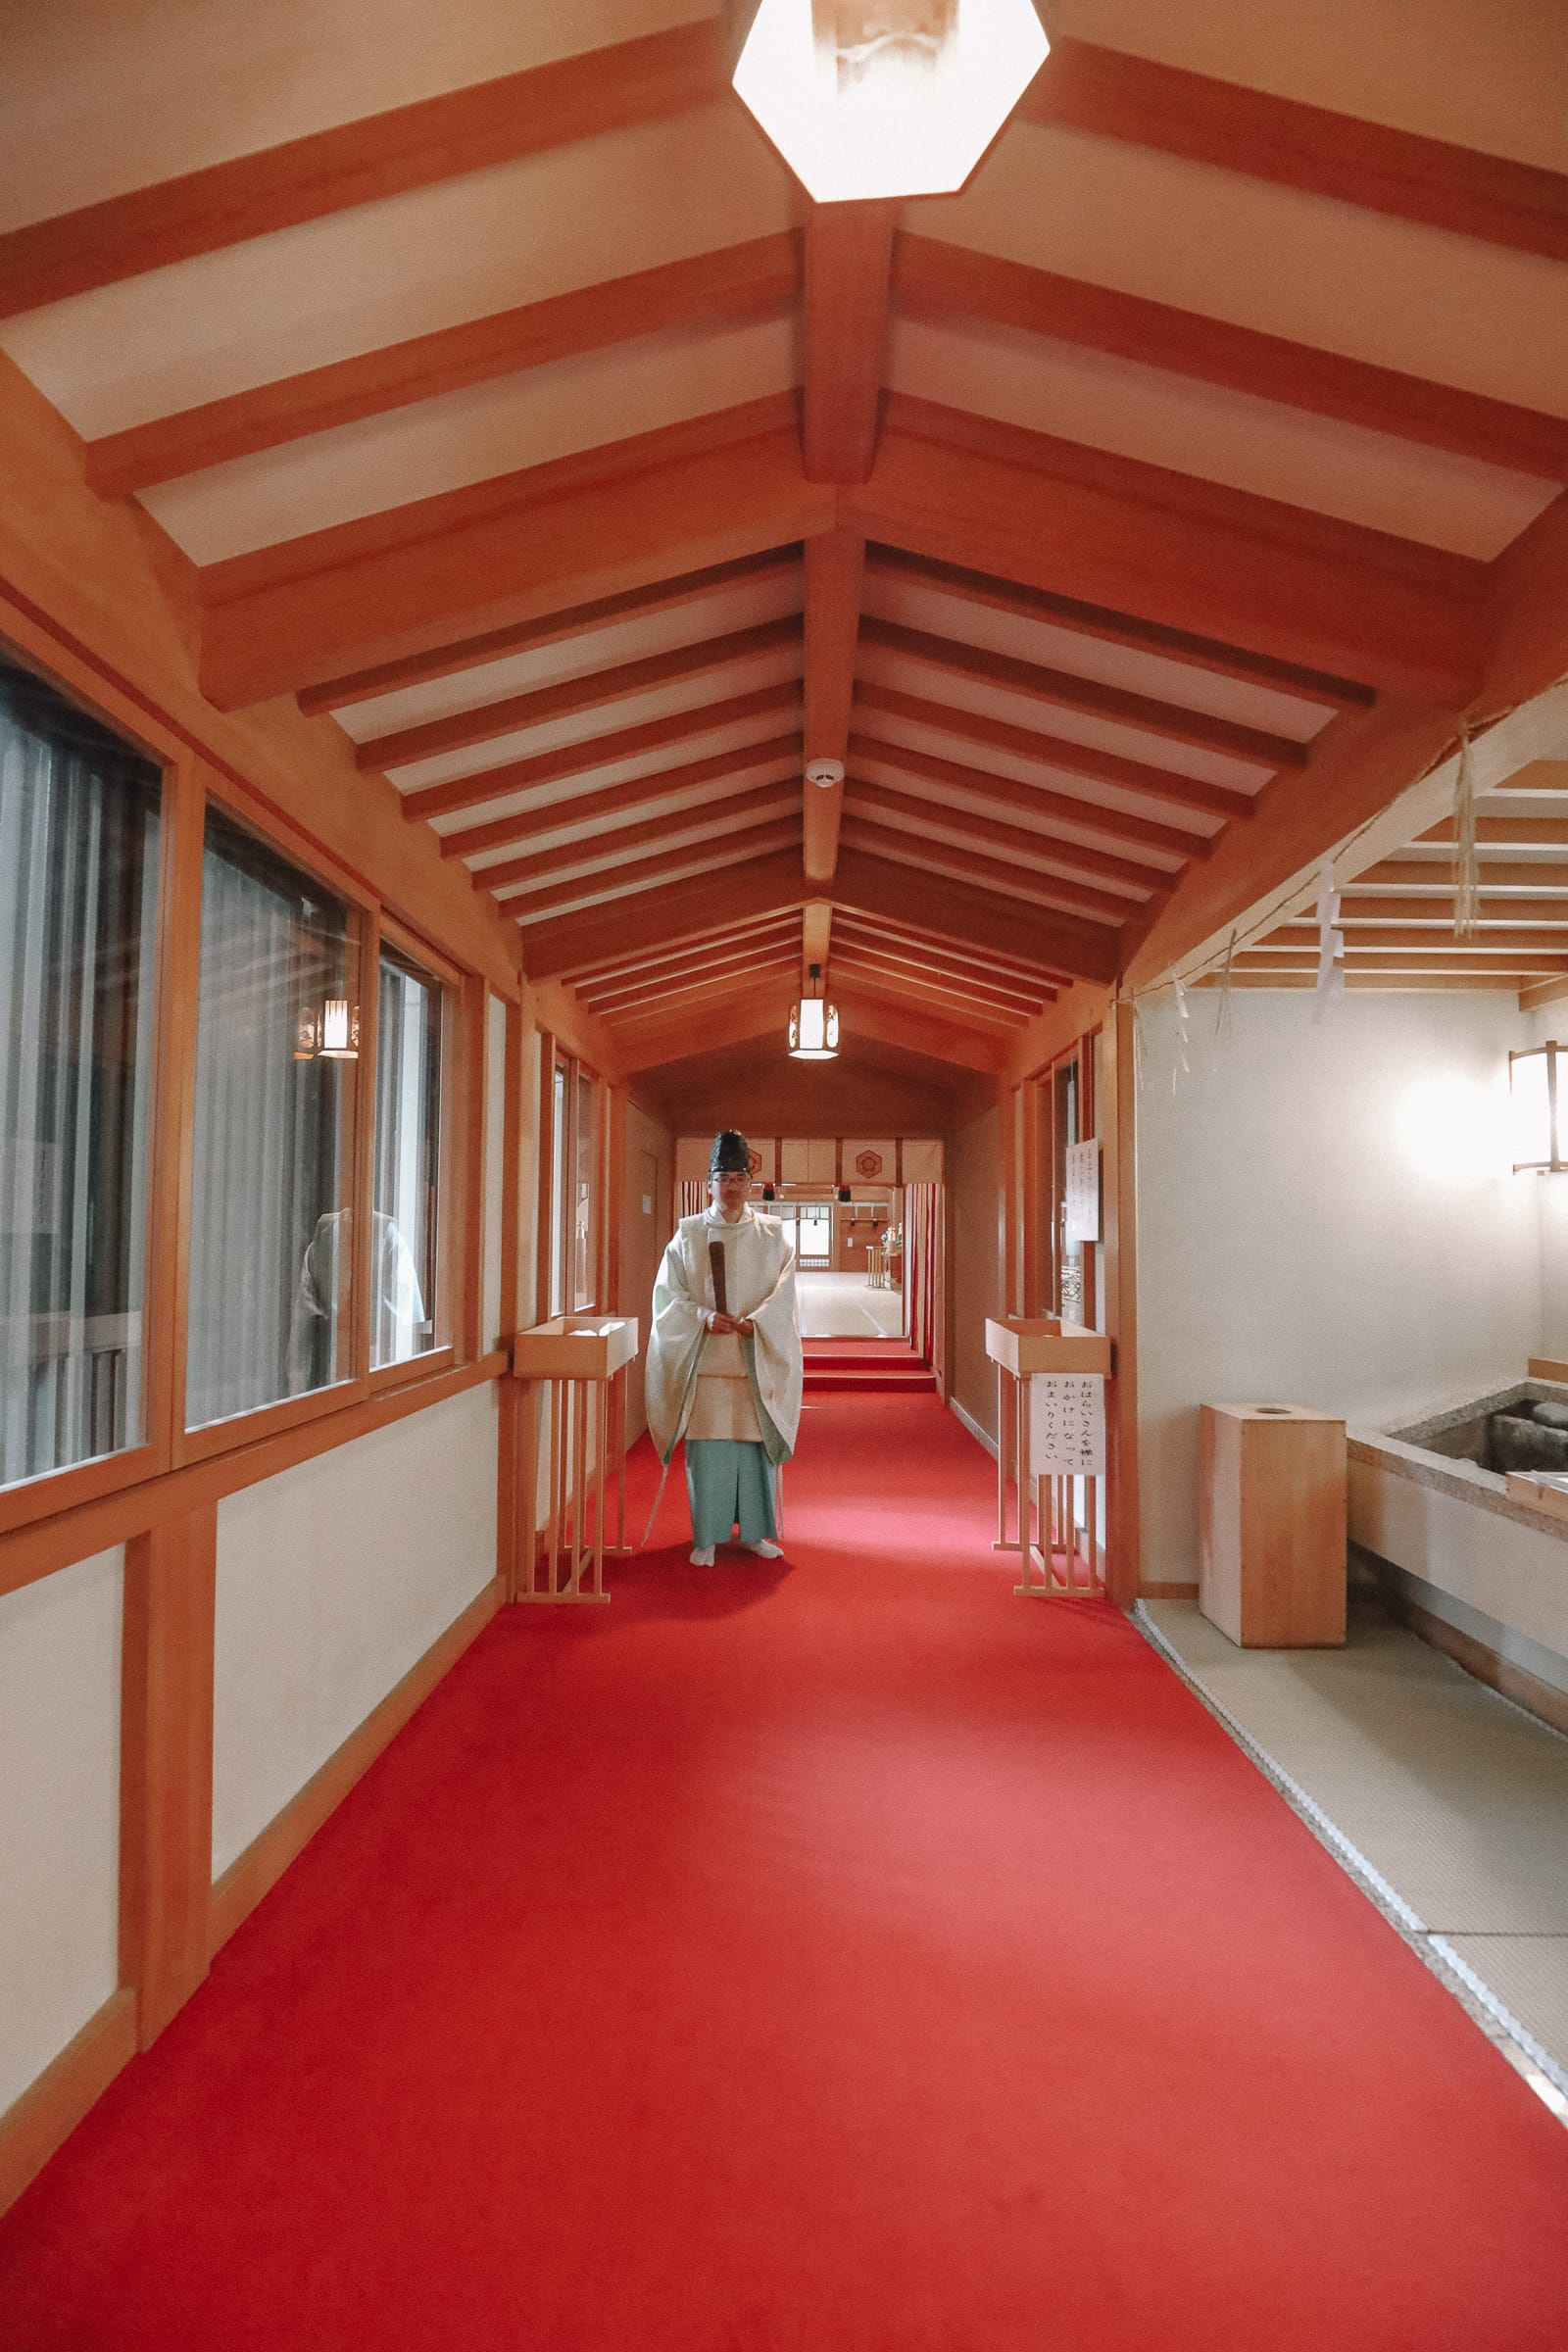 A Misogi Purification Ritual And Temples In Hakusan City - Japan (47)